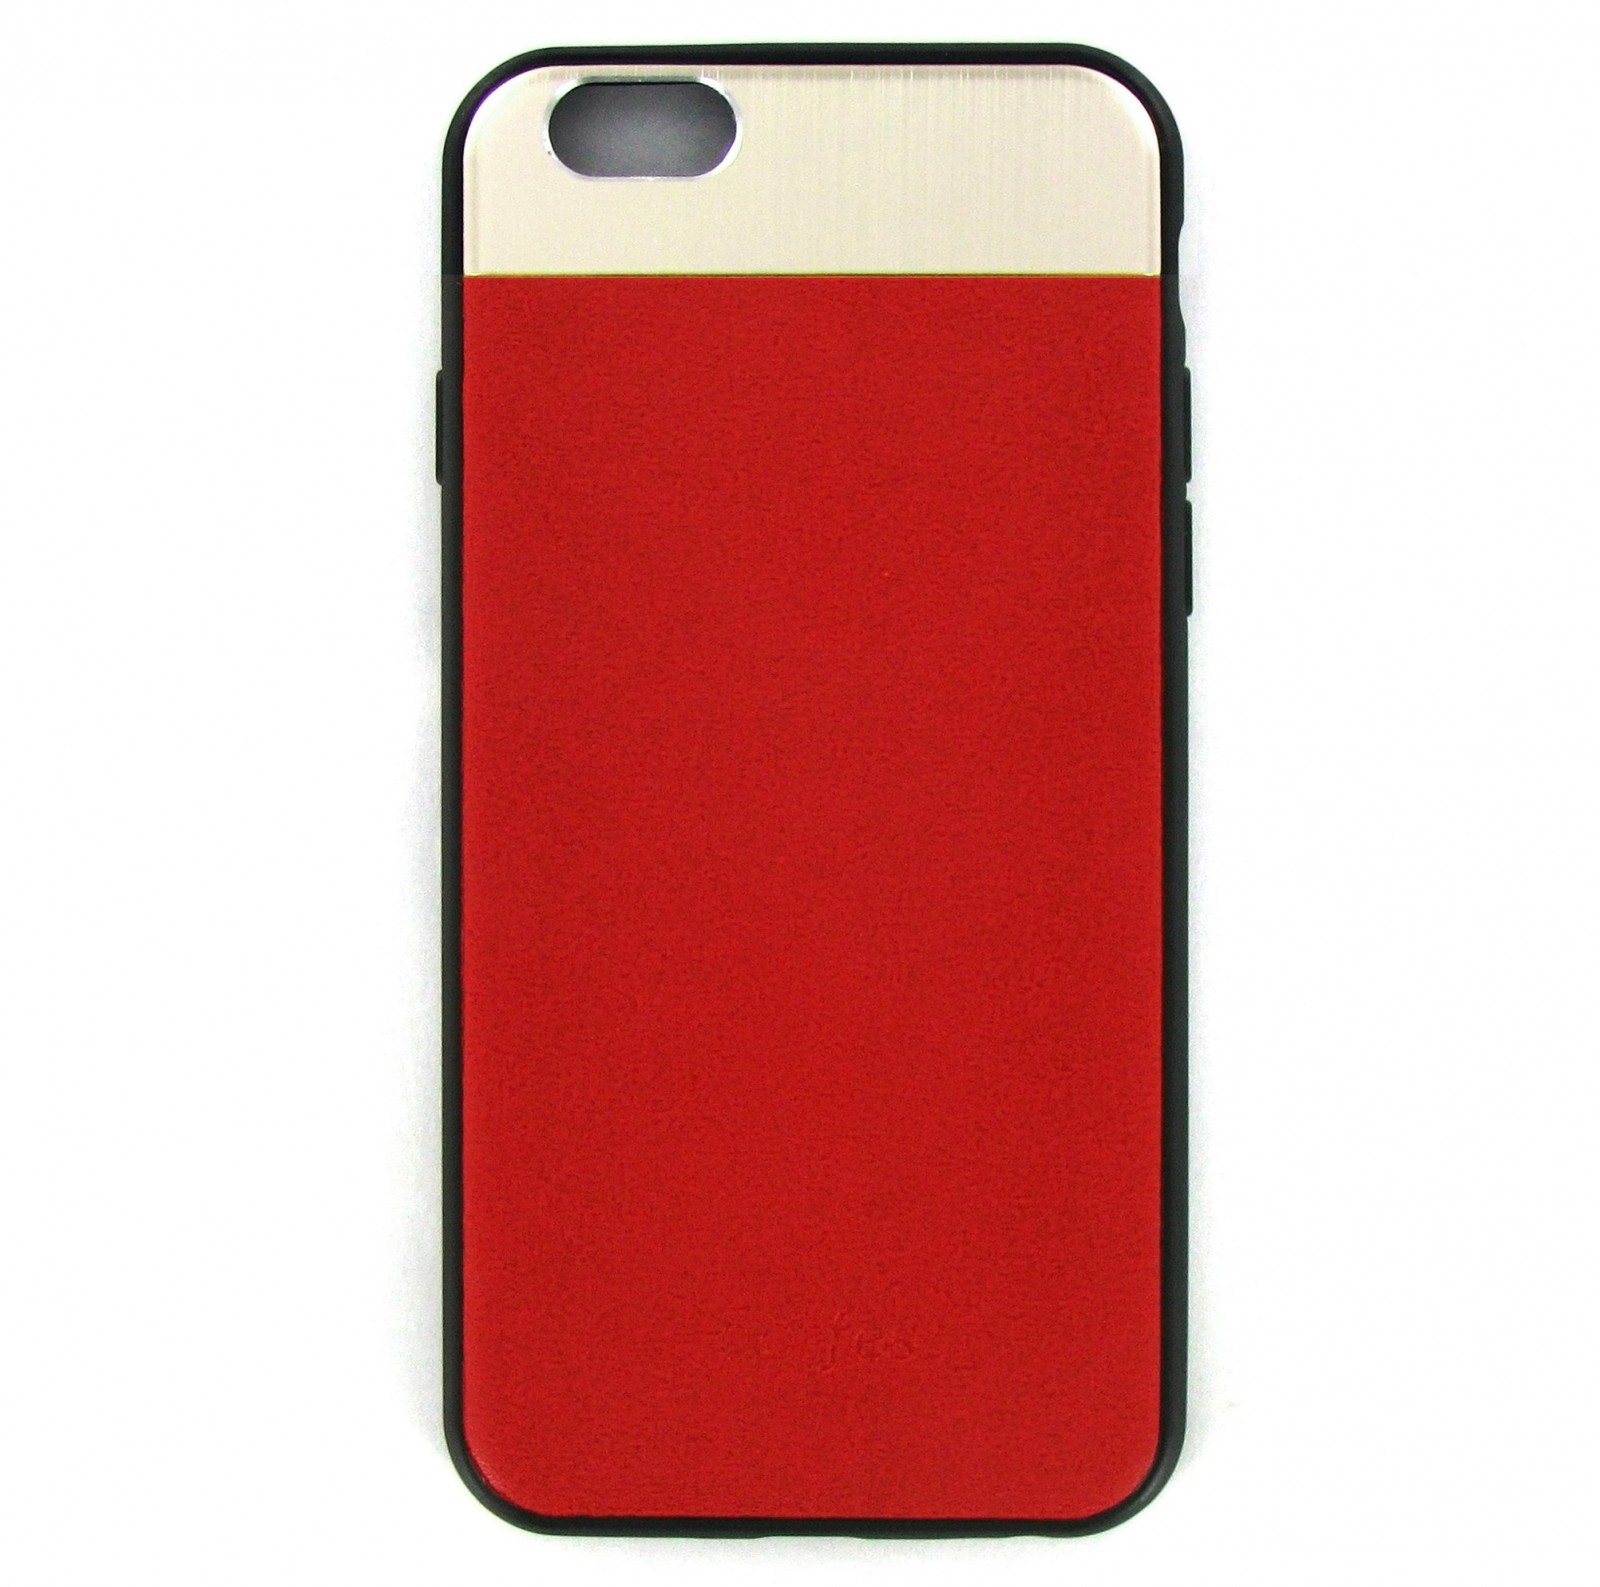 Накладка Dotfes G03 Aluminium Alloy Nappa leather Case для iPhone 6/6s, red kinston kst92536 grid pattern protective aluminium back case for iphone 6 4 7 silver